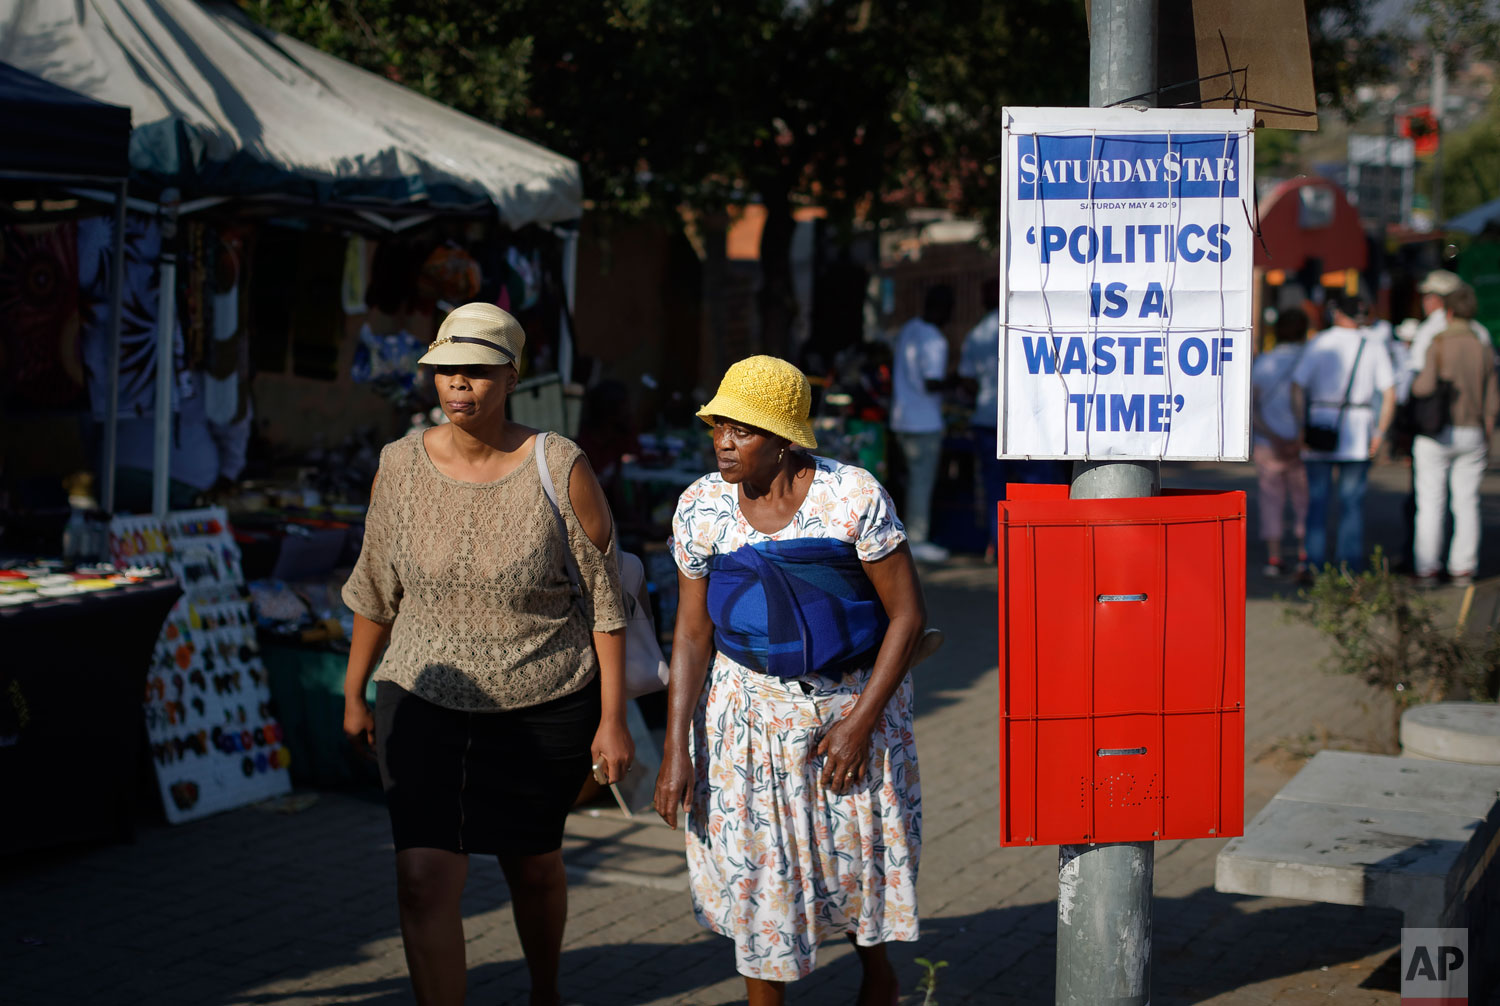 Two women walk past a placard carrying a headline from the Saturday Star newspaper, in Soweto township, Johannesburg, South Africa Saturday, May 4, 2019.  (AP Photo/Ben Curtis)